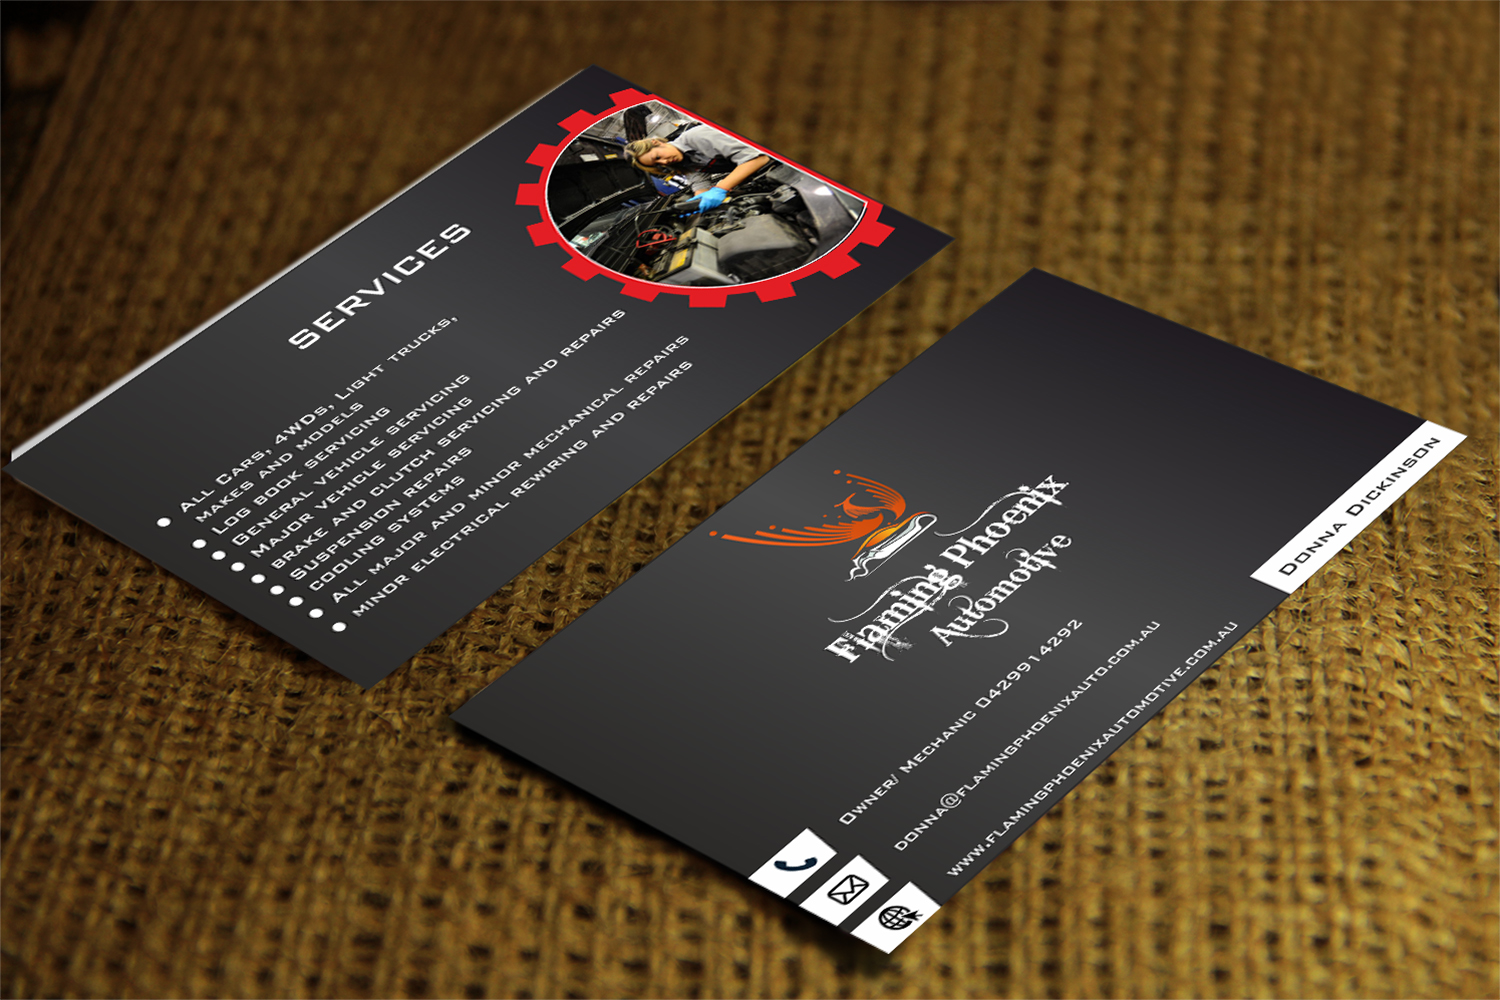 Bold professional automotive business card design for flaming business card design by vishalsvachheta for flaming phoenix automotive design 15576770 colourmoves